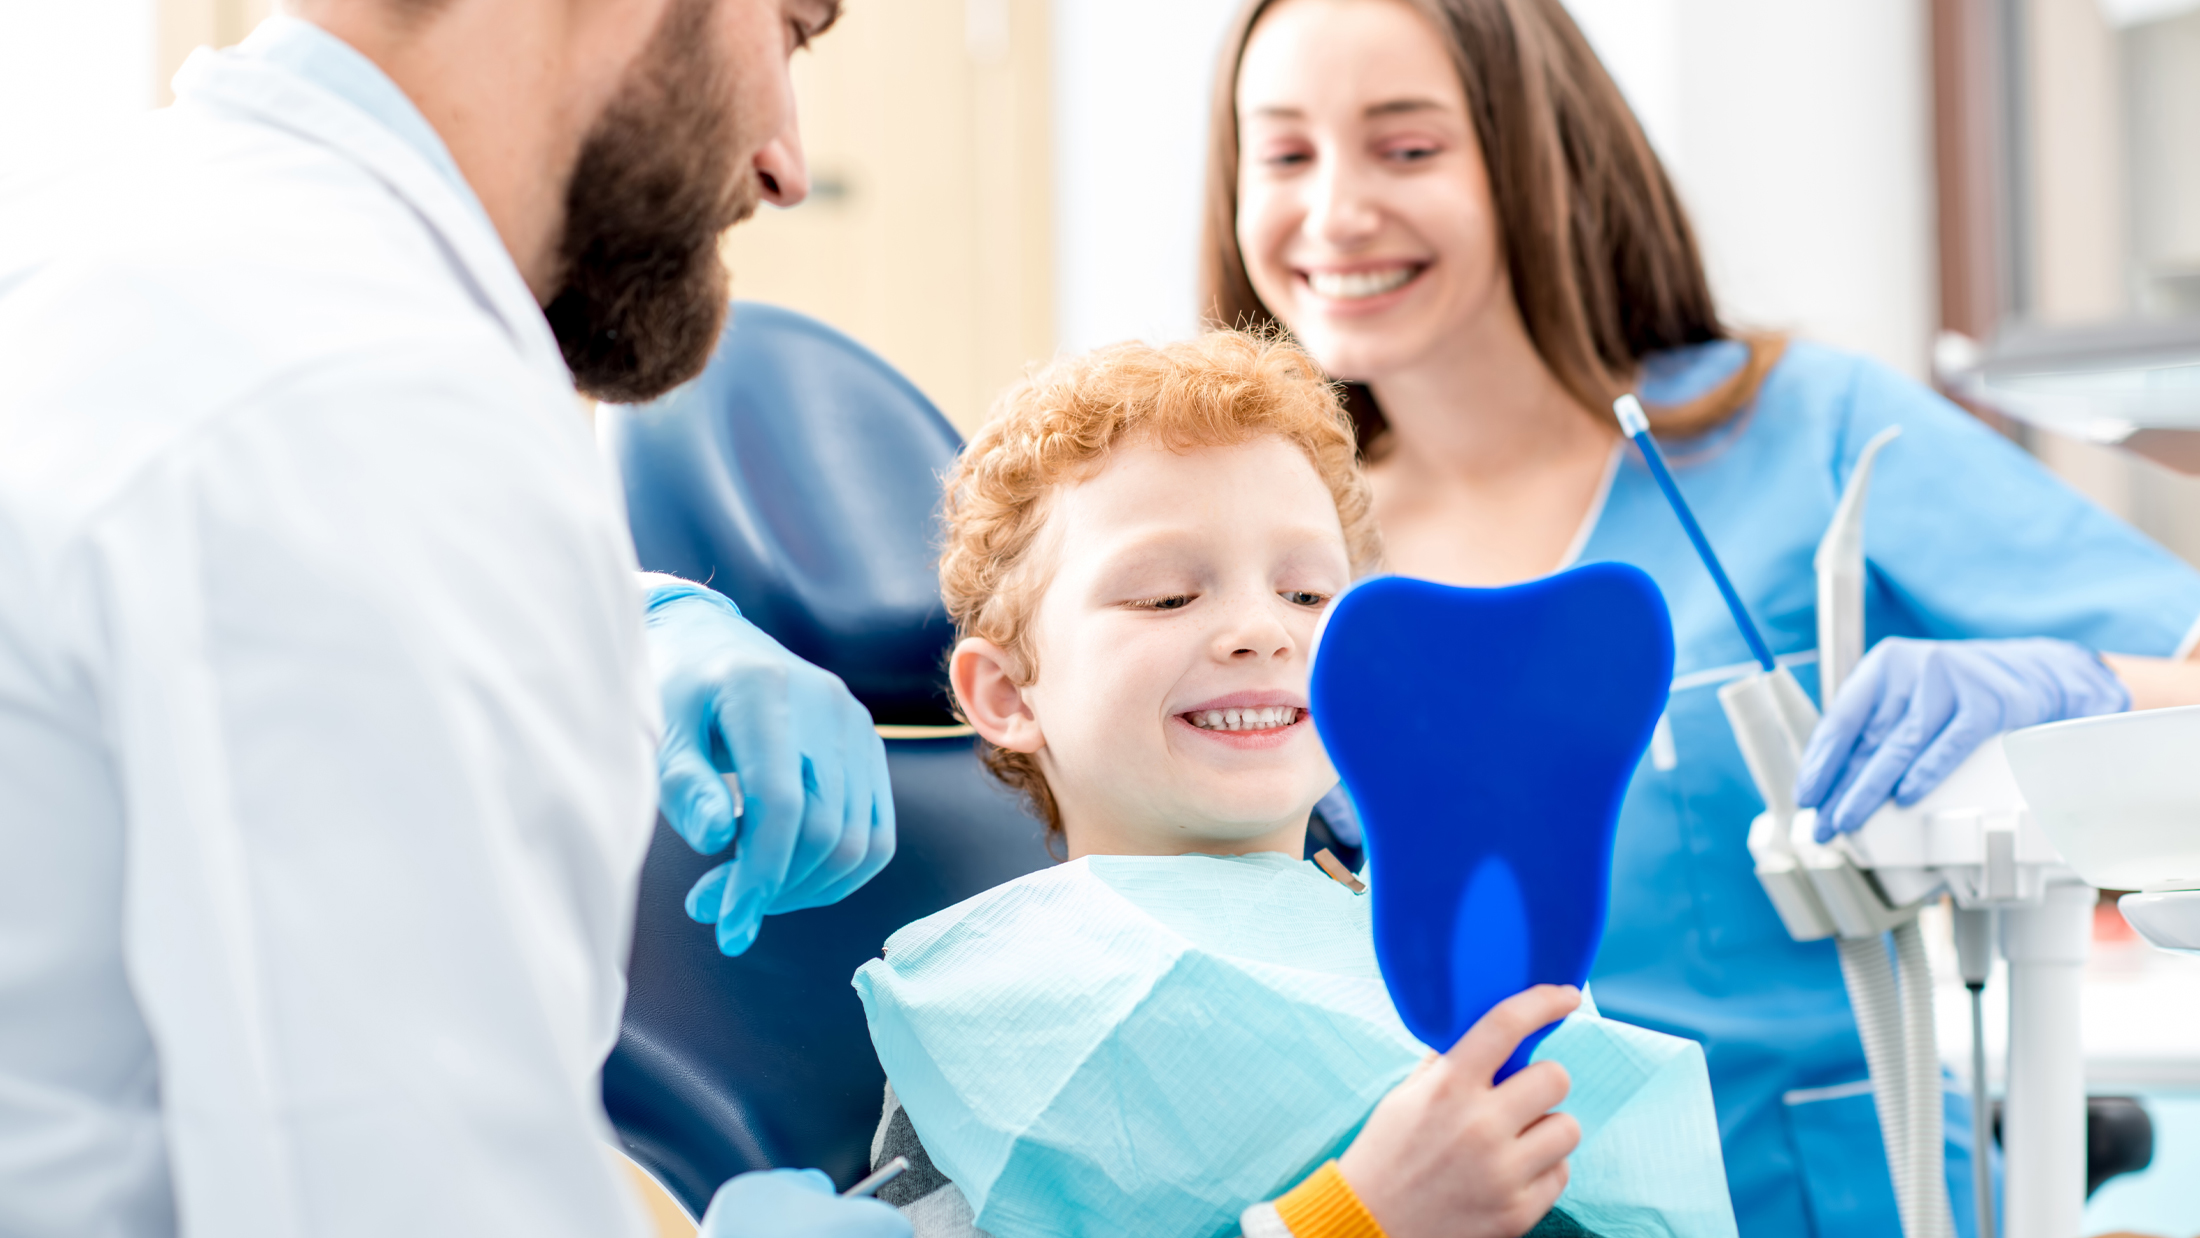 photo of children's dentistry being performed